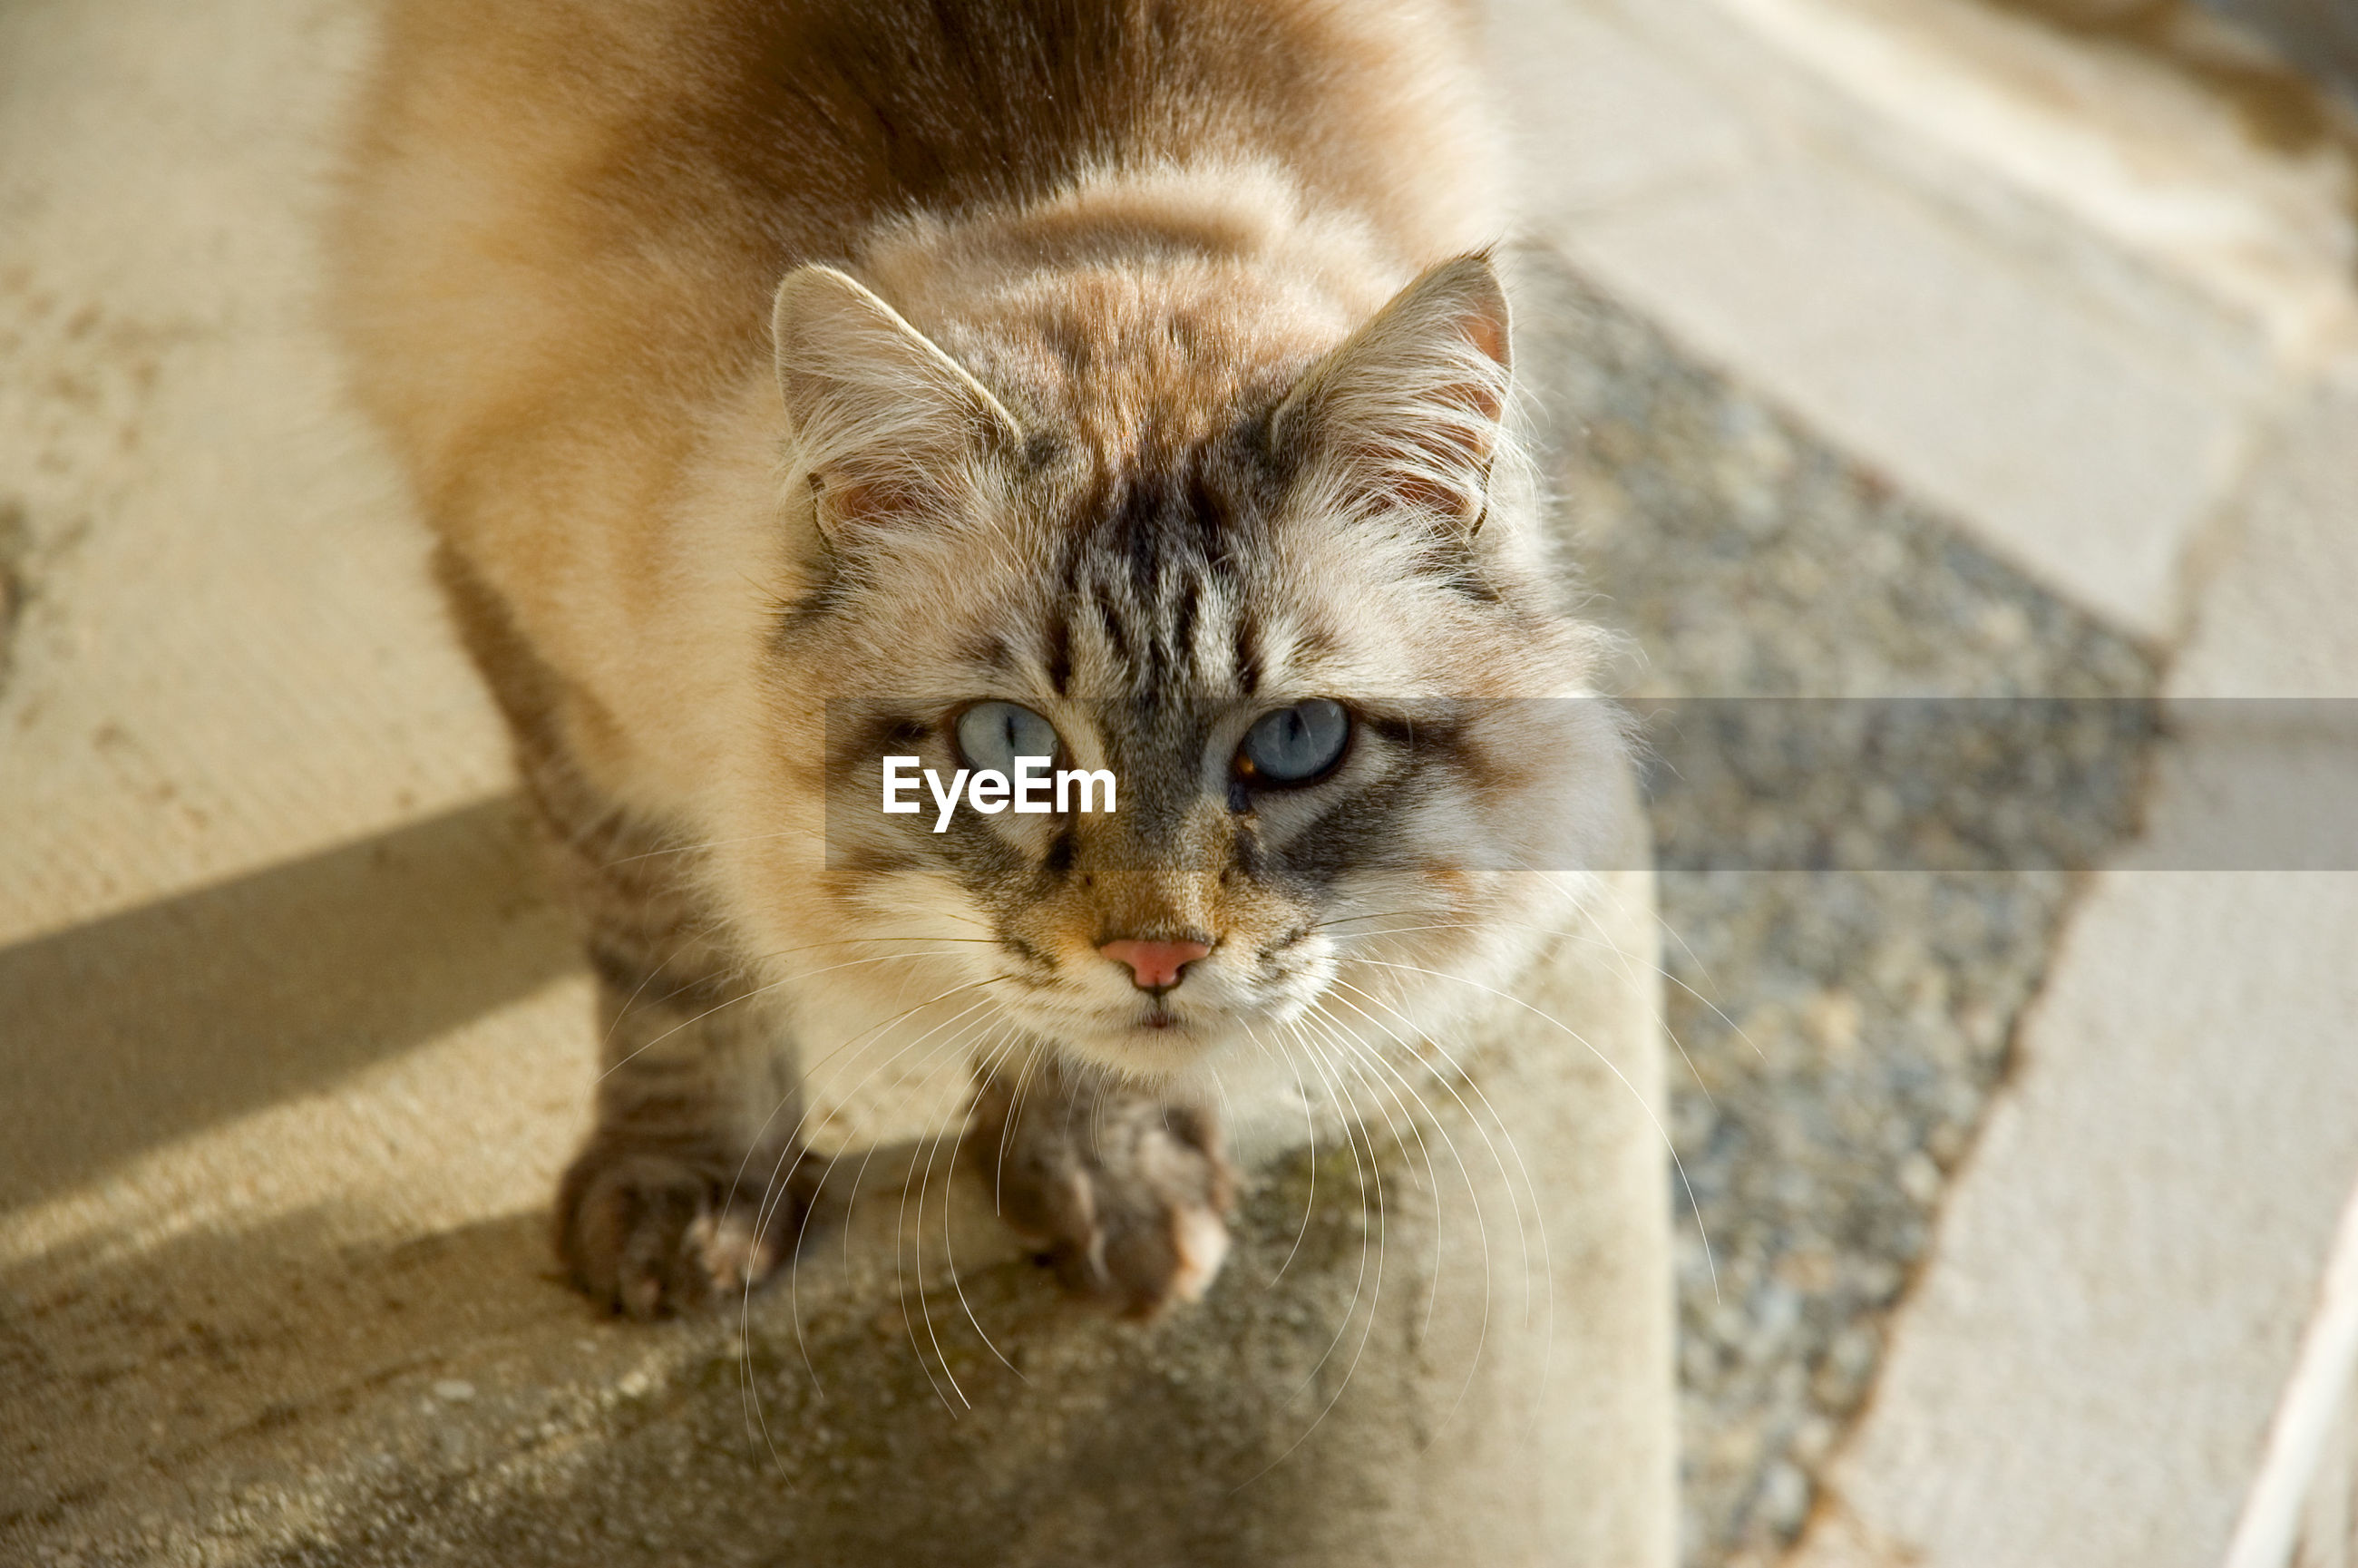 HIGH ANGLE VIEW PORTRAIT OF CAT BY WALL OUTDOORS